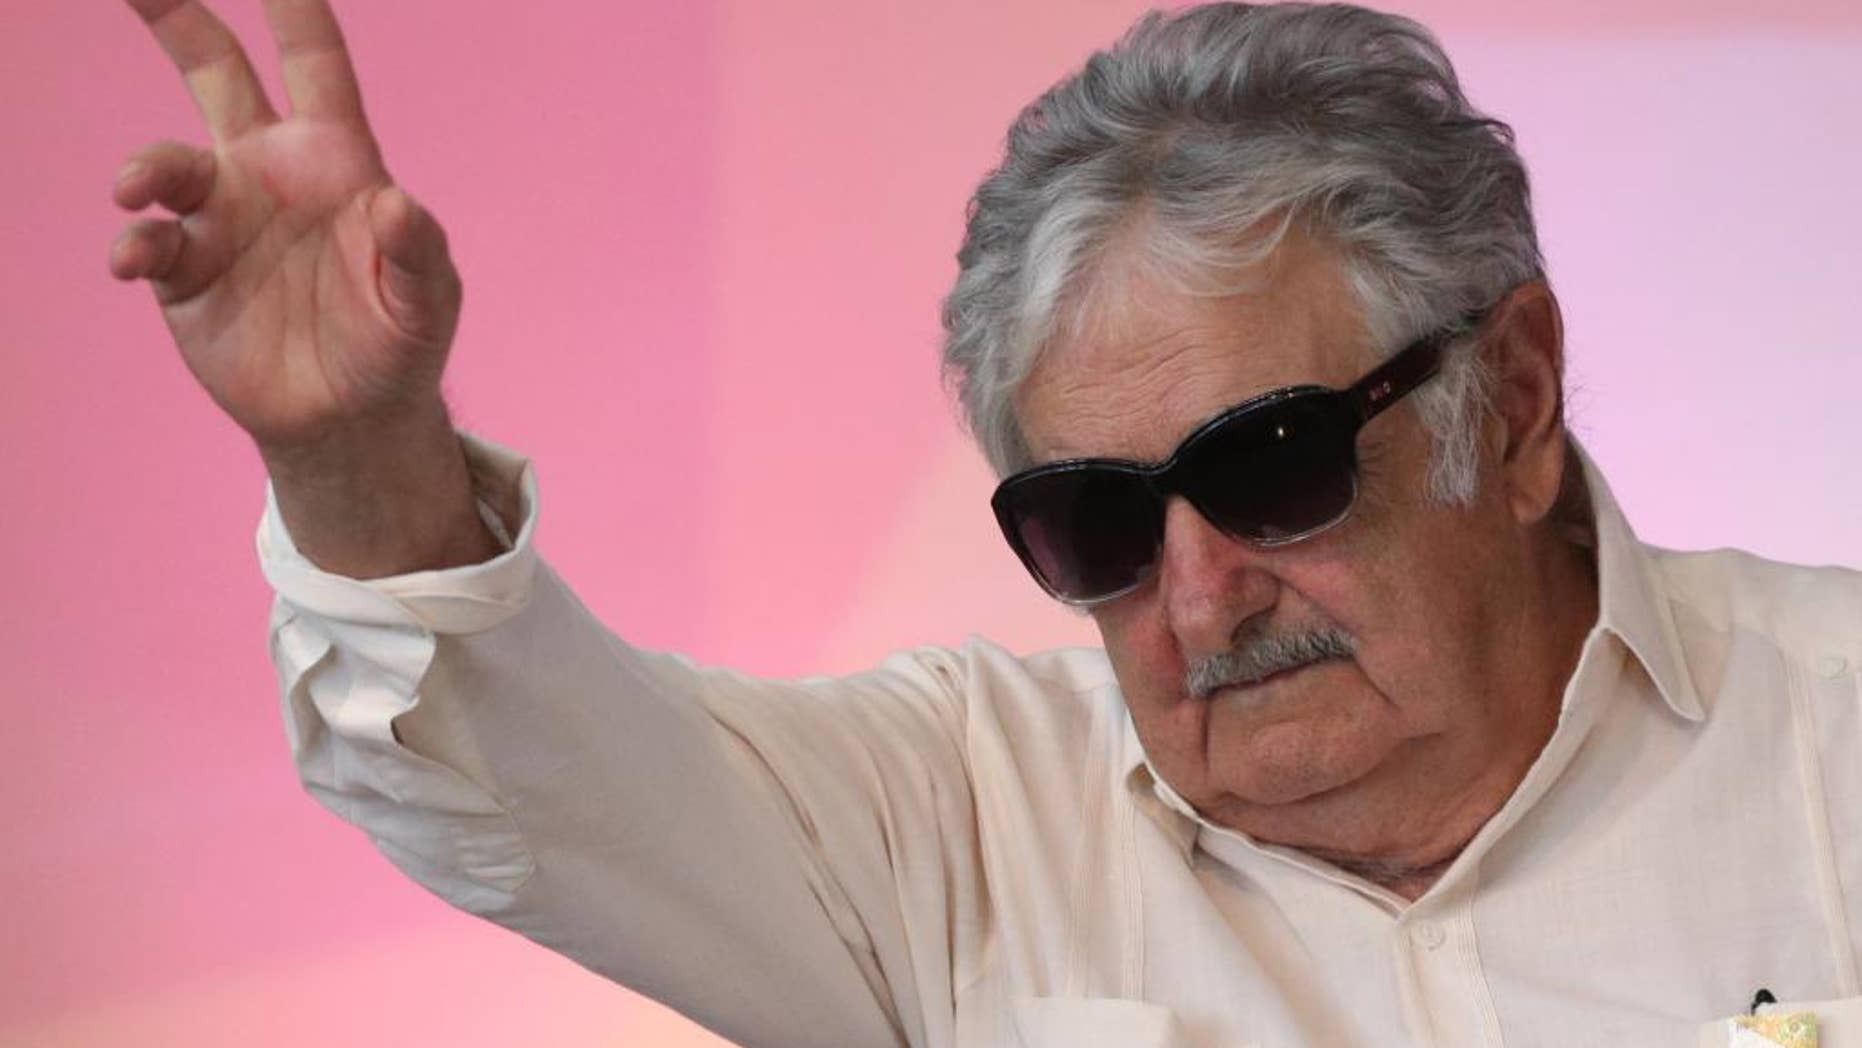 """FILE - In this Dec. 16, 2015 file photo, Uruguay's former President Jose Mujica waves to the crowd during the opening of the National Youth Conference, in Brasilia, Brazil. Mujica says Venezuelan President Nicolas Maduro is """"crazy as a goat,"""" while speaking Wednesday, May 18, 2016, at a press conference where he was asked about an escalating row between Maduro and the head of the Organization of American States. (AP Photo/Eraldo Peres, File)"""